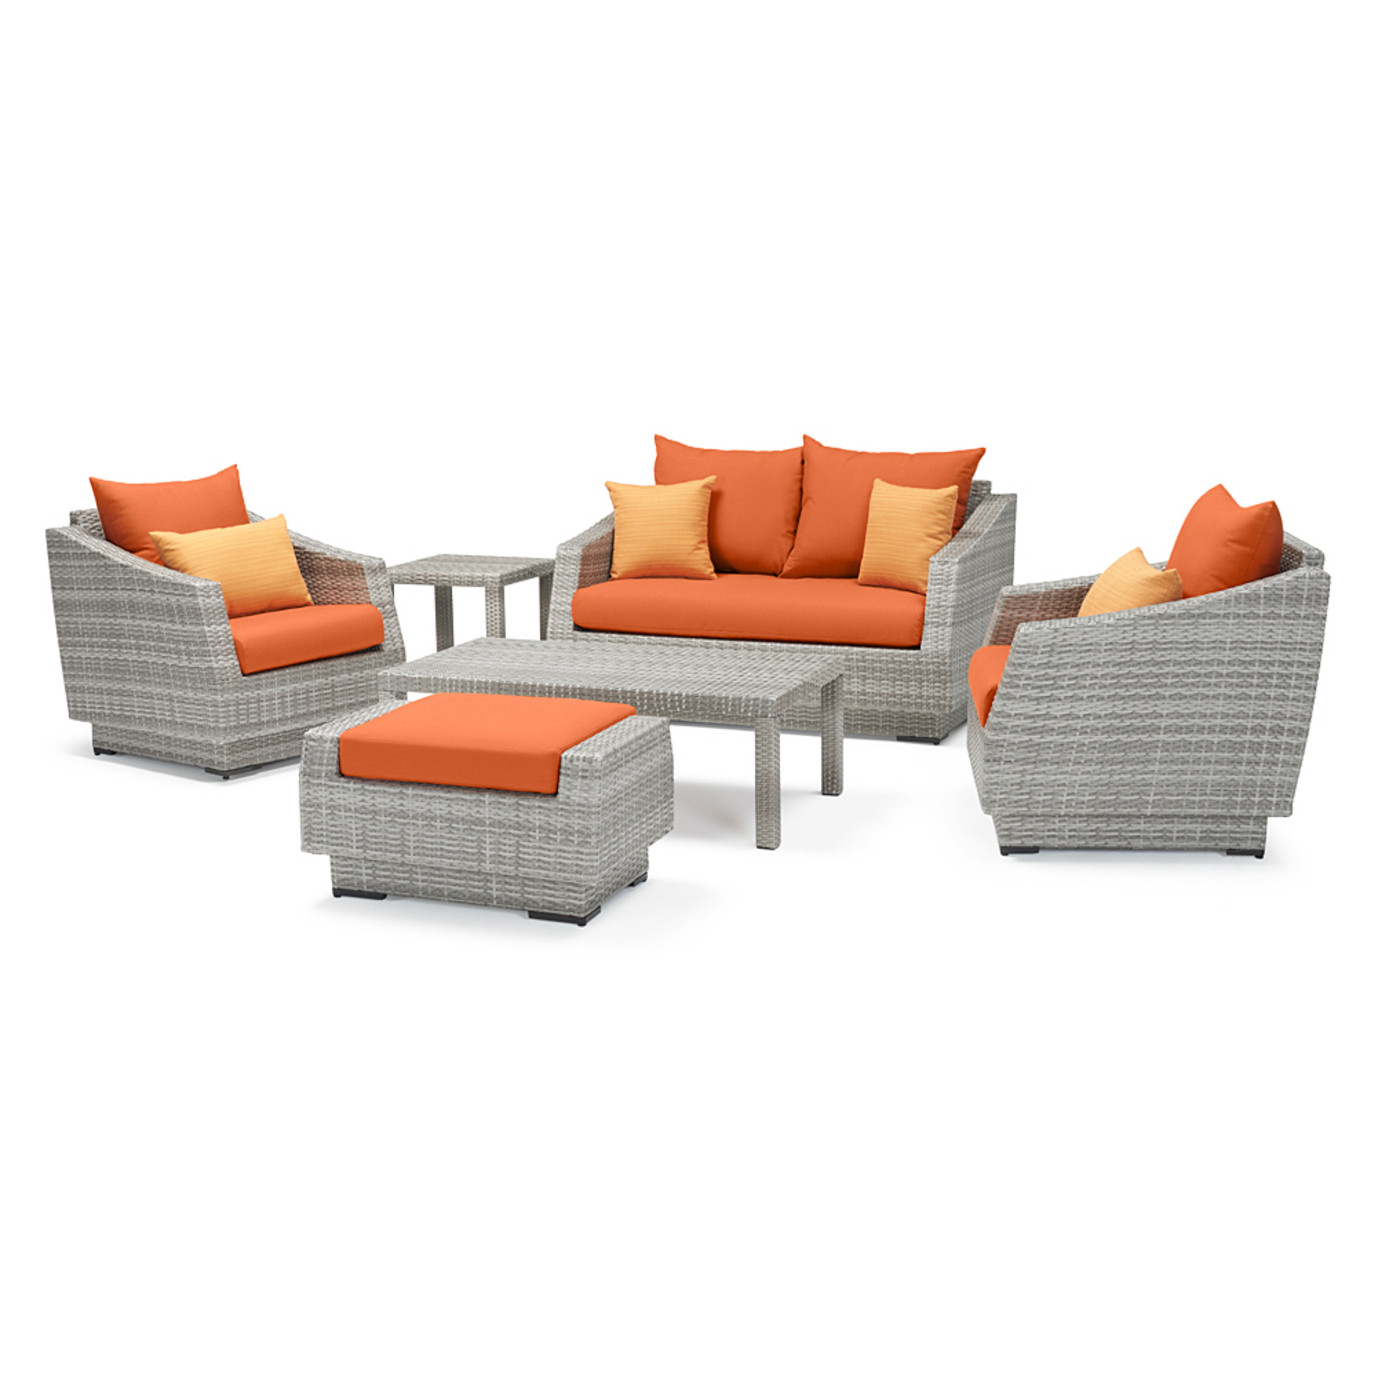 Cannes™ 6 Piece Love and Club Seating Set - Tikka Orange